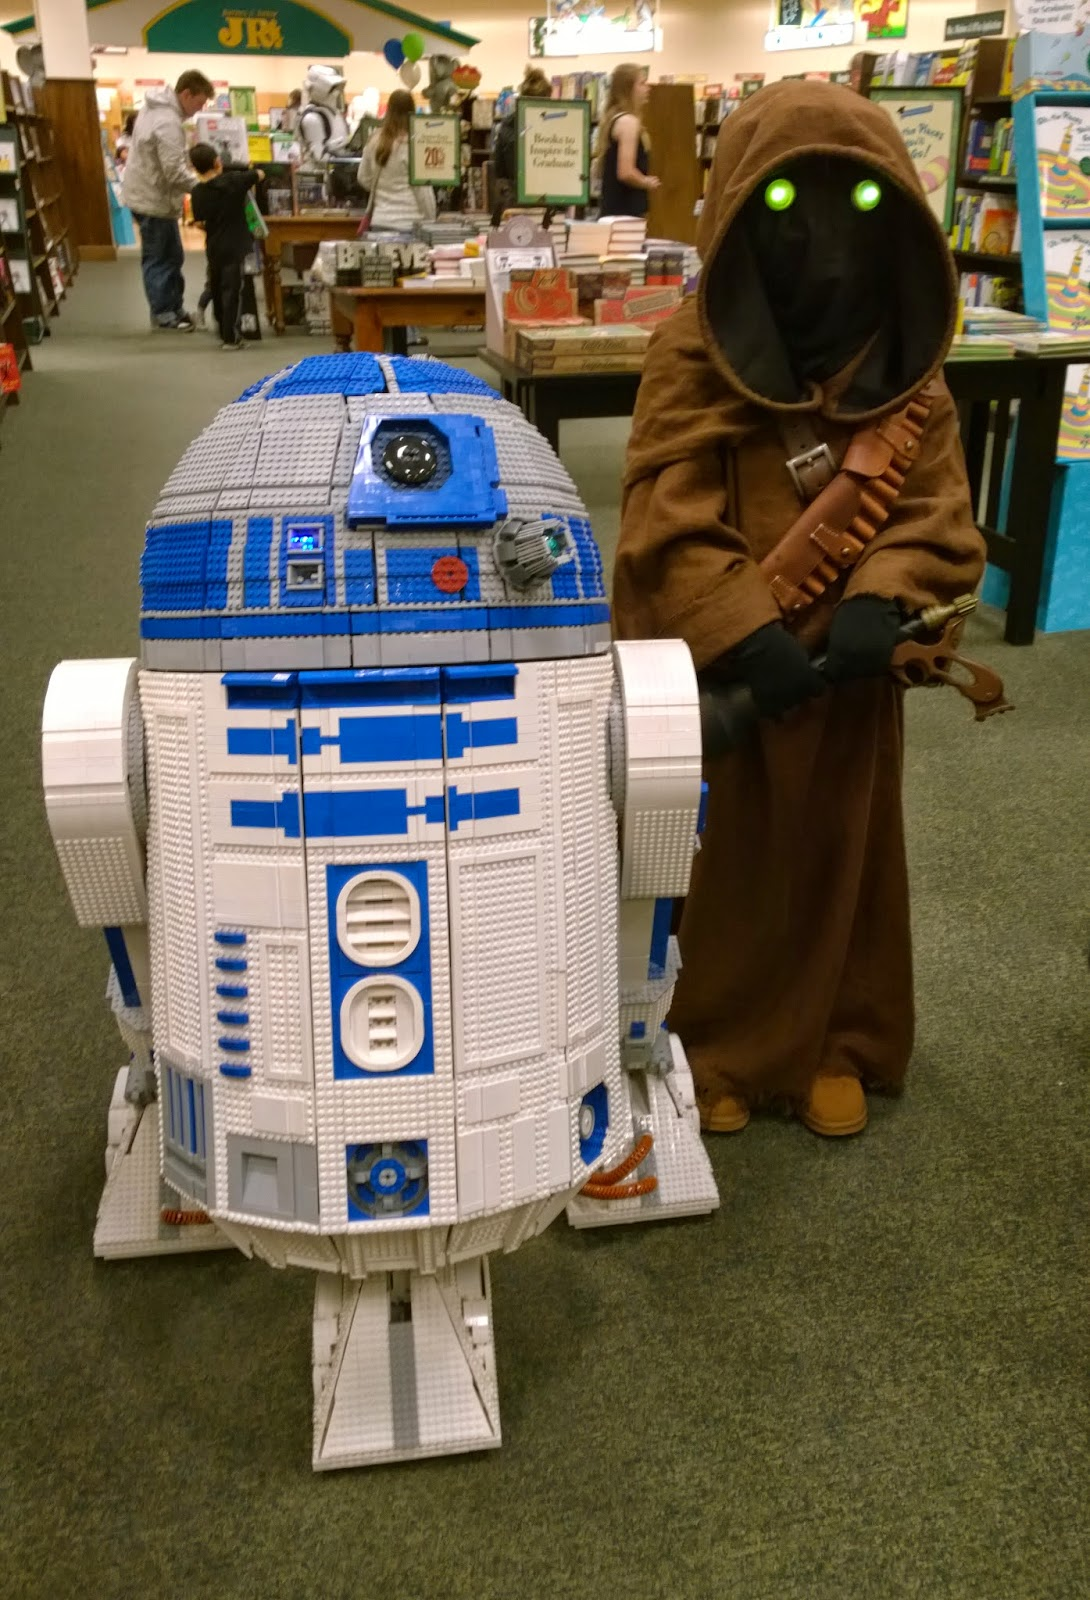 L3-G0 the Lego R2-D2 and a 501st Jawa